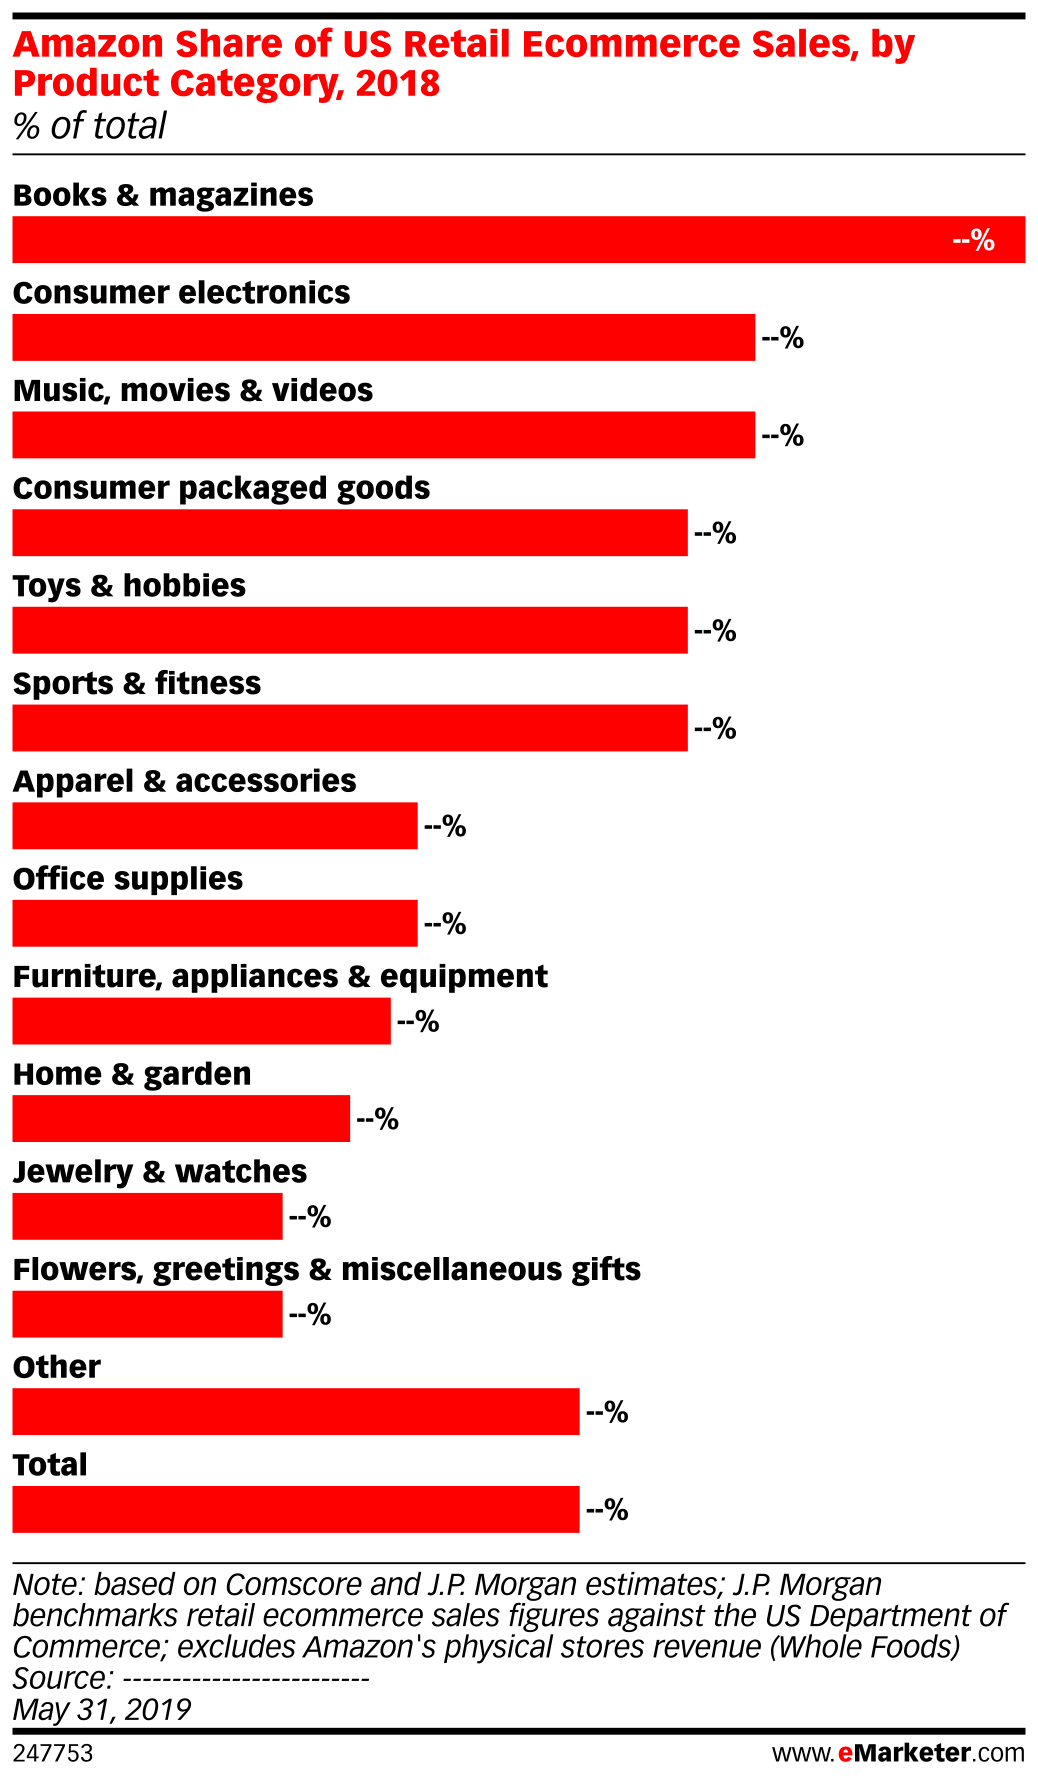 Amazon Share of US Retail Ecommerce Sales, by Product Category, 2018 (% of total)